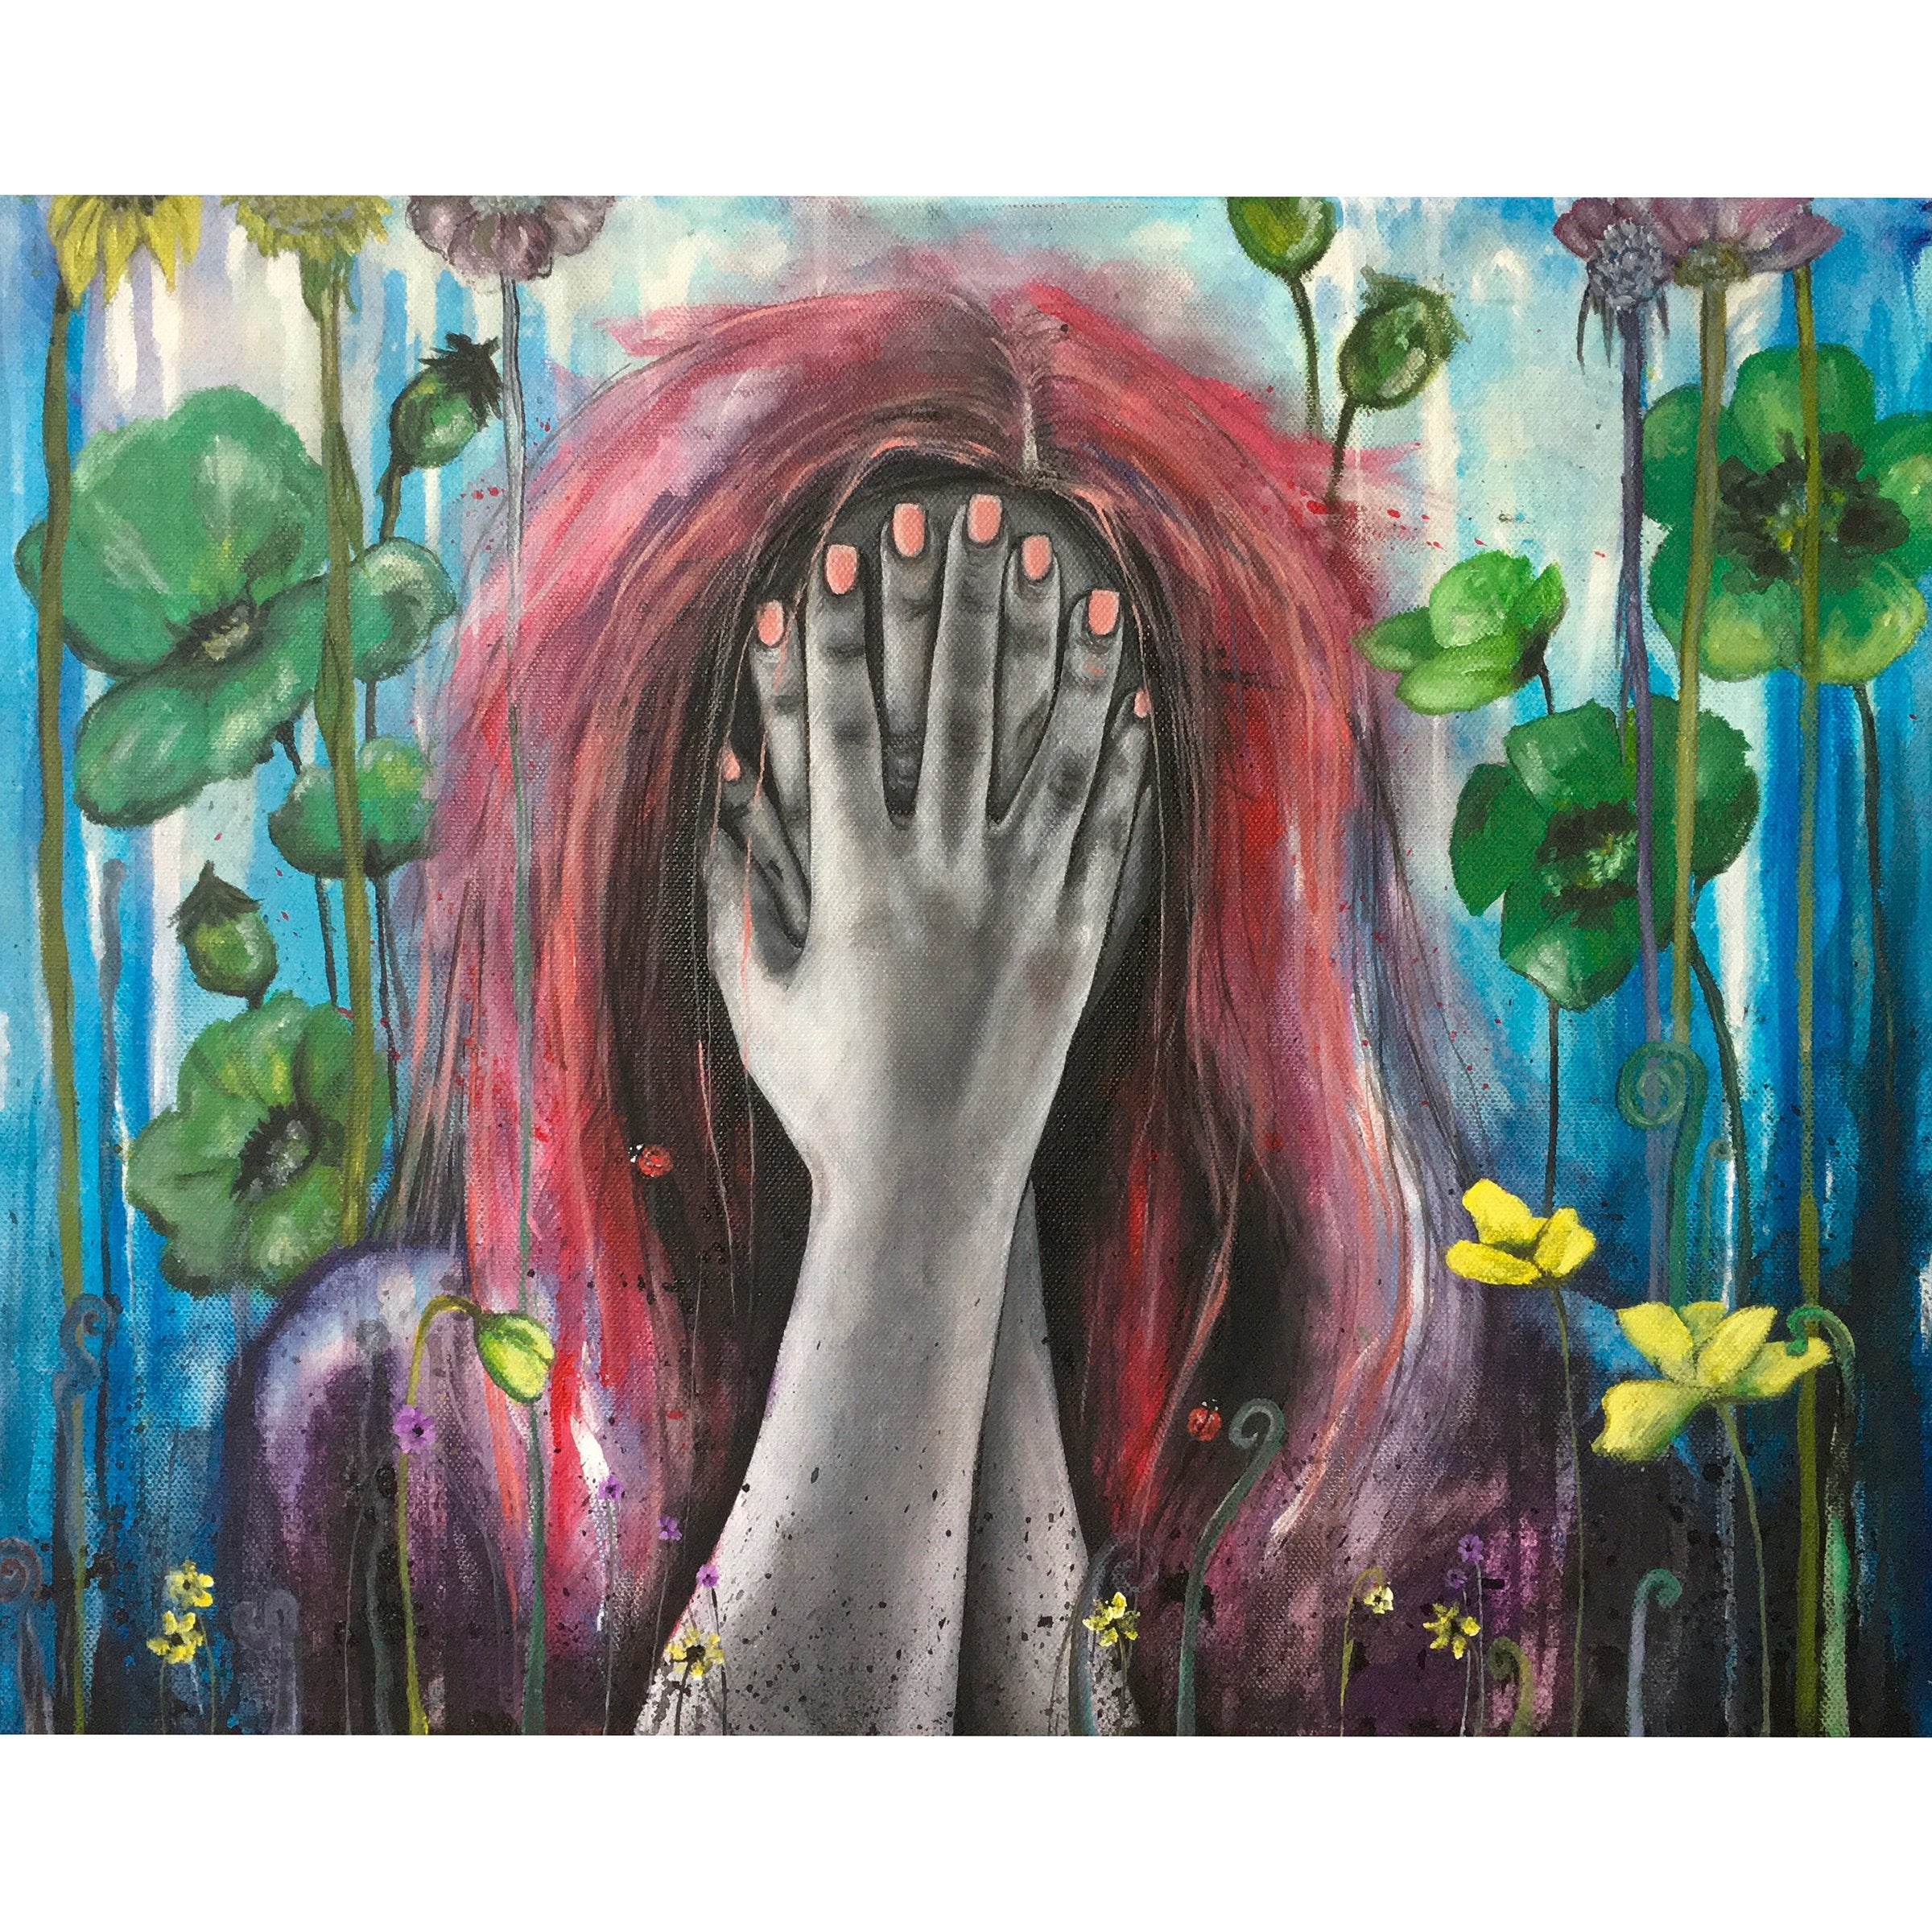 Blind Bloomer - Denize Artuñedo Engblom - Original Painting on The Good Shop Online Store